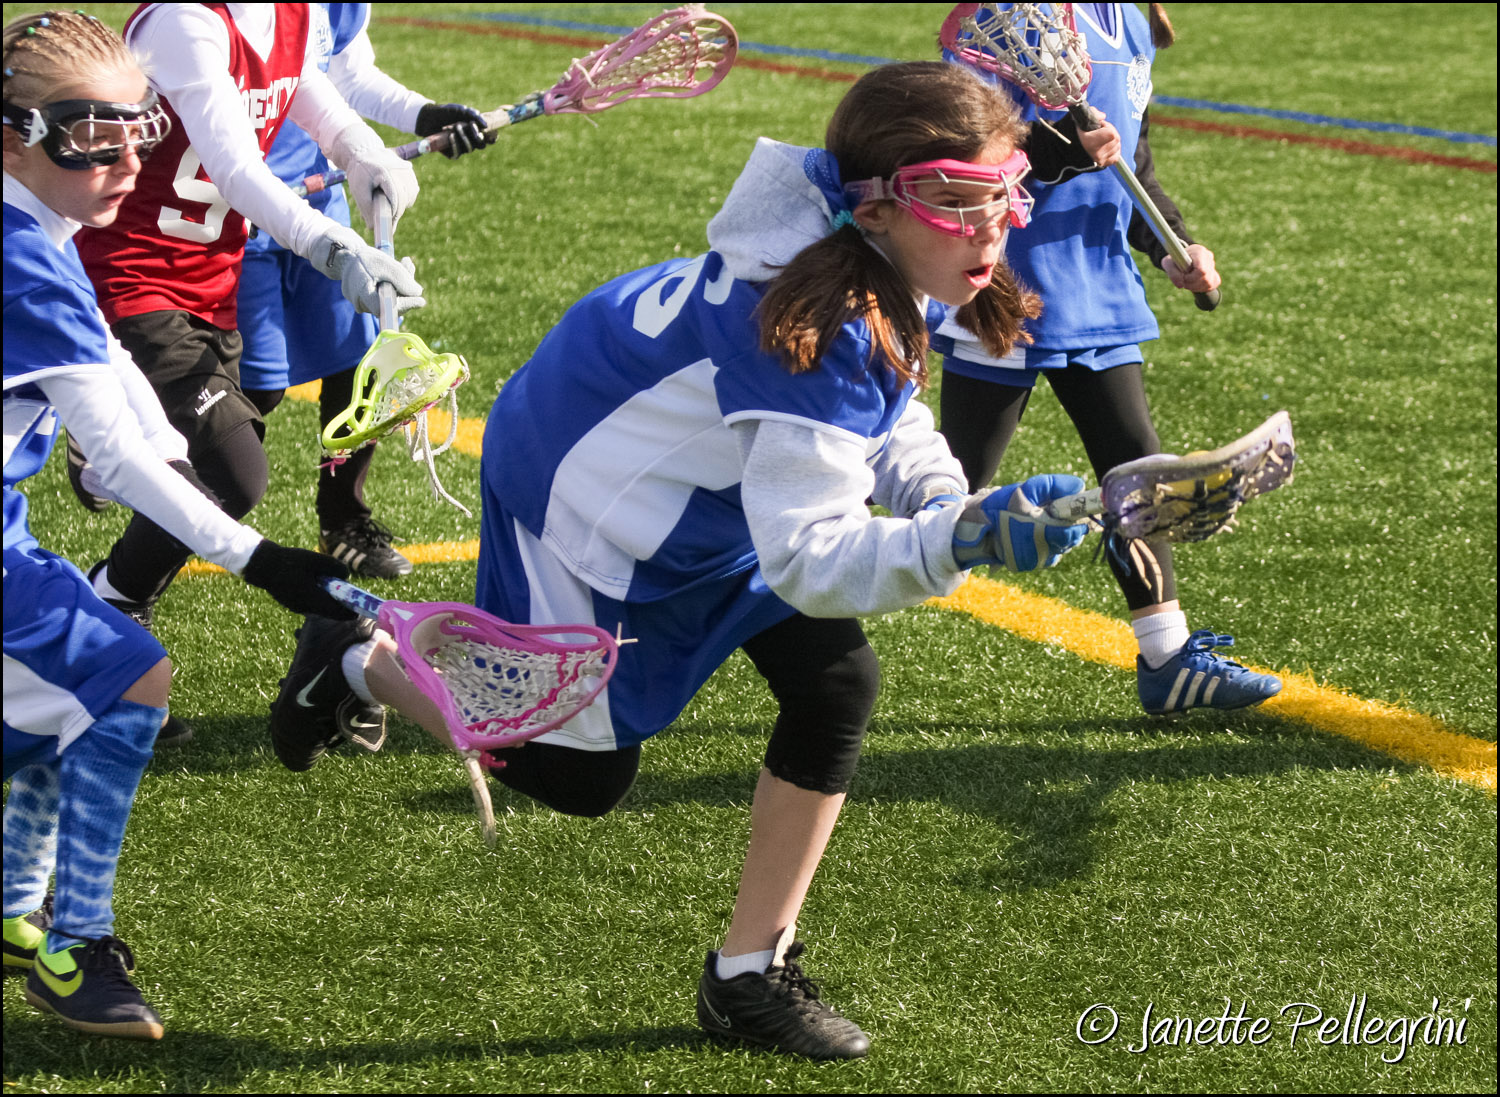 011 04-10-10 Sportography Long Beach Lacrosse 076 web ©.jpg